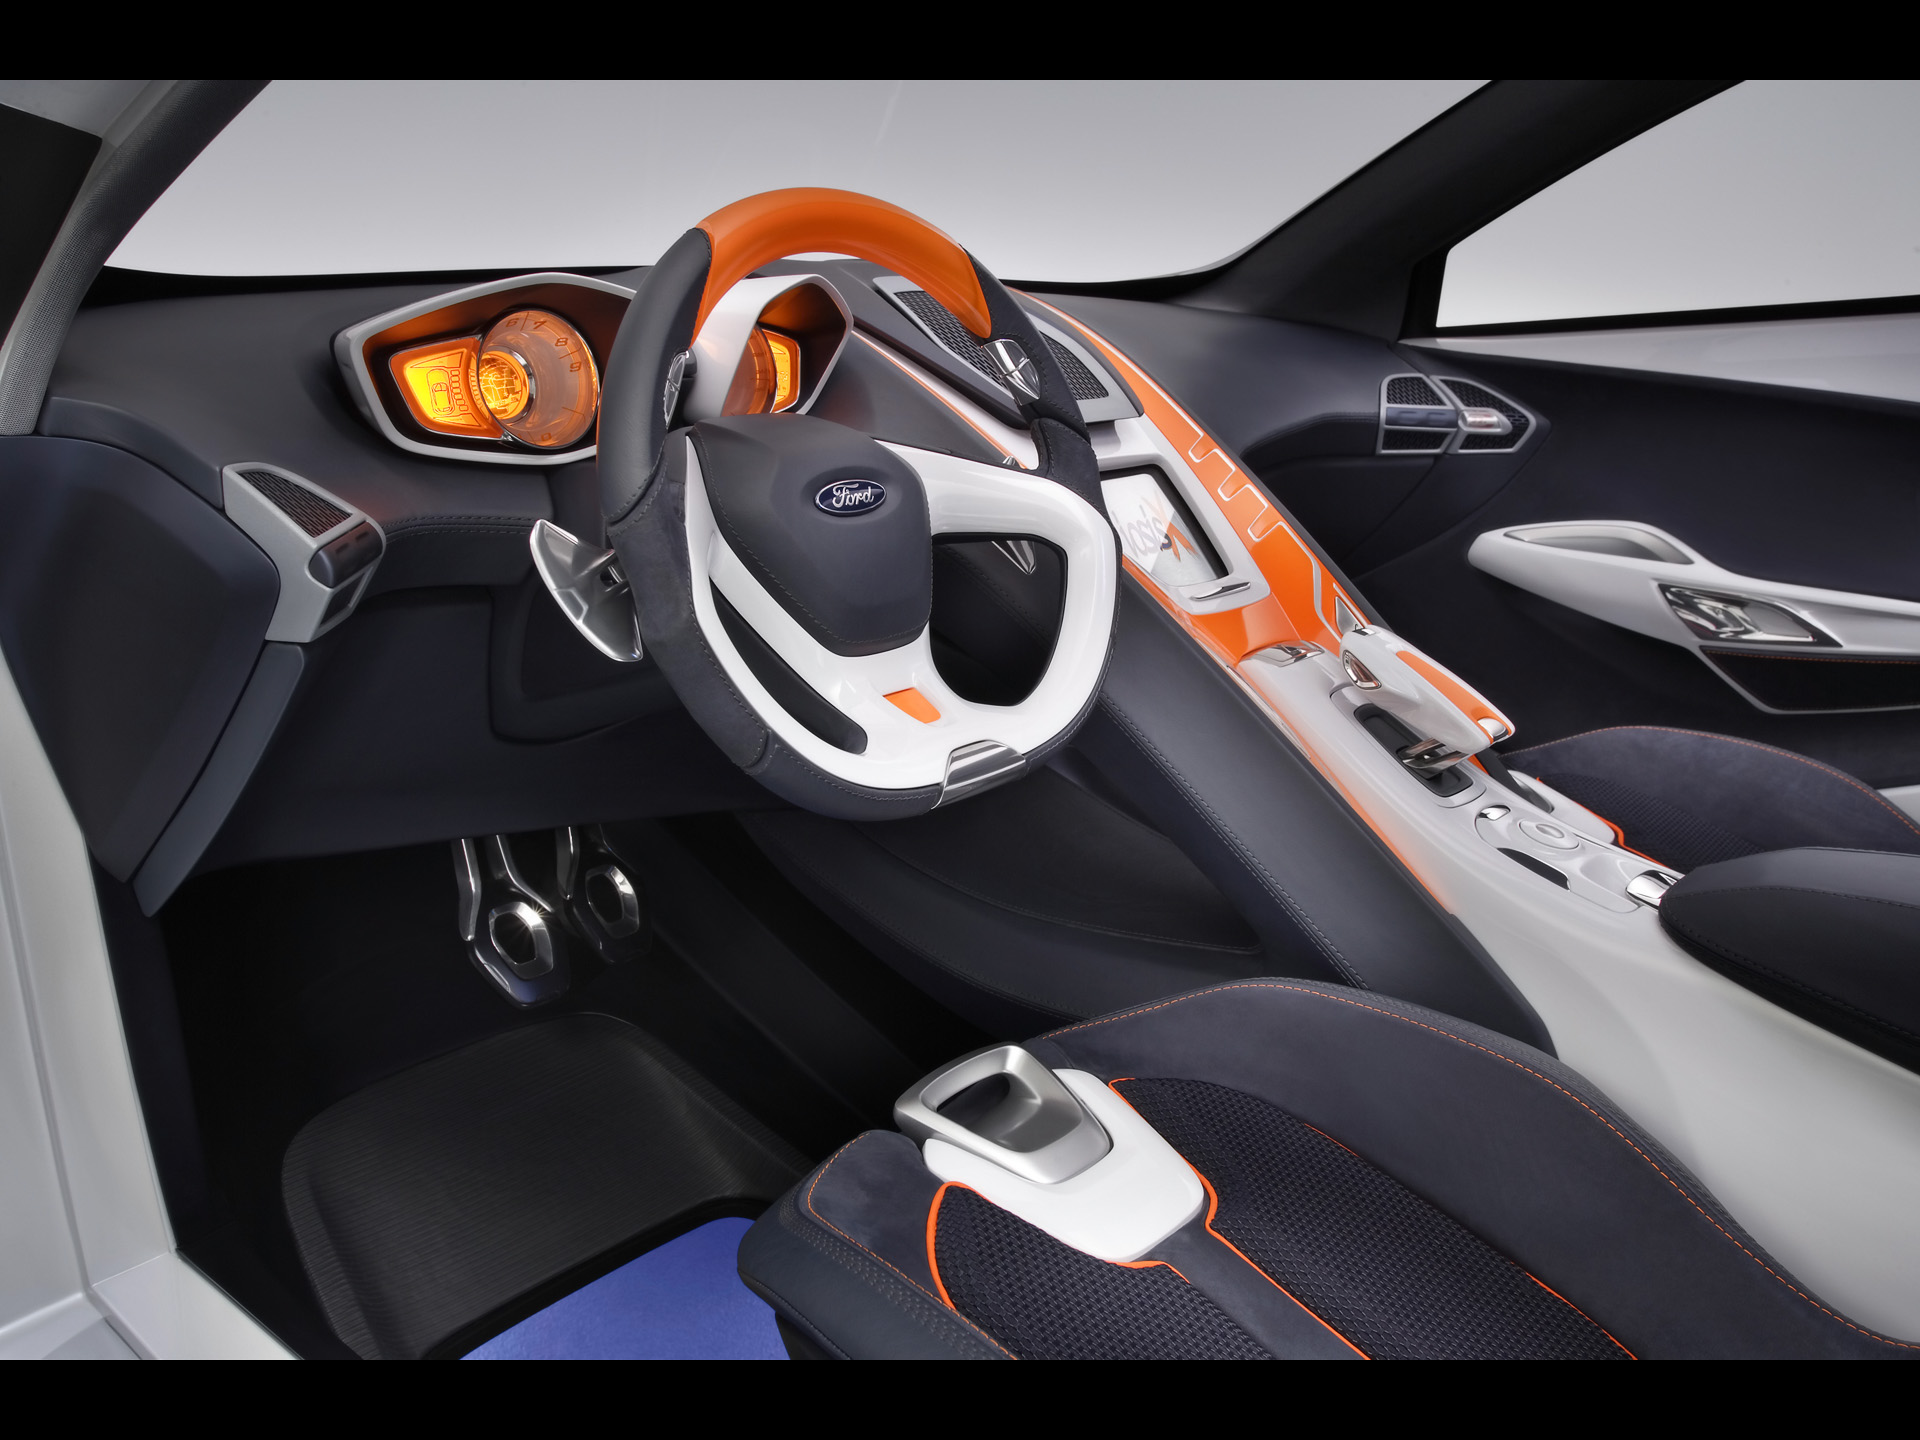 2006 Ford iosis X Concept photo - 3